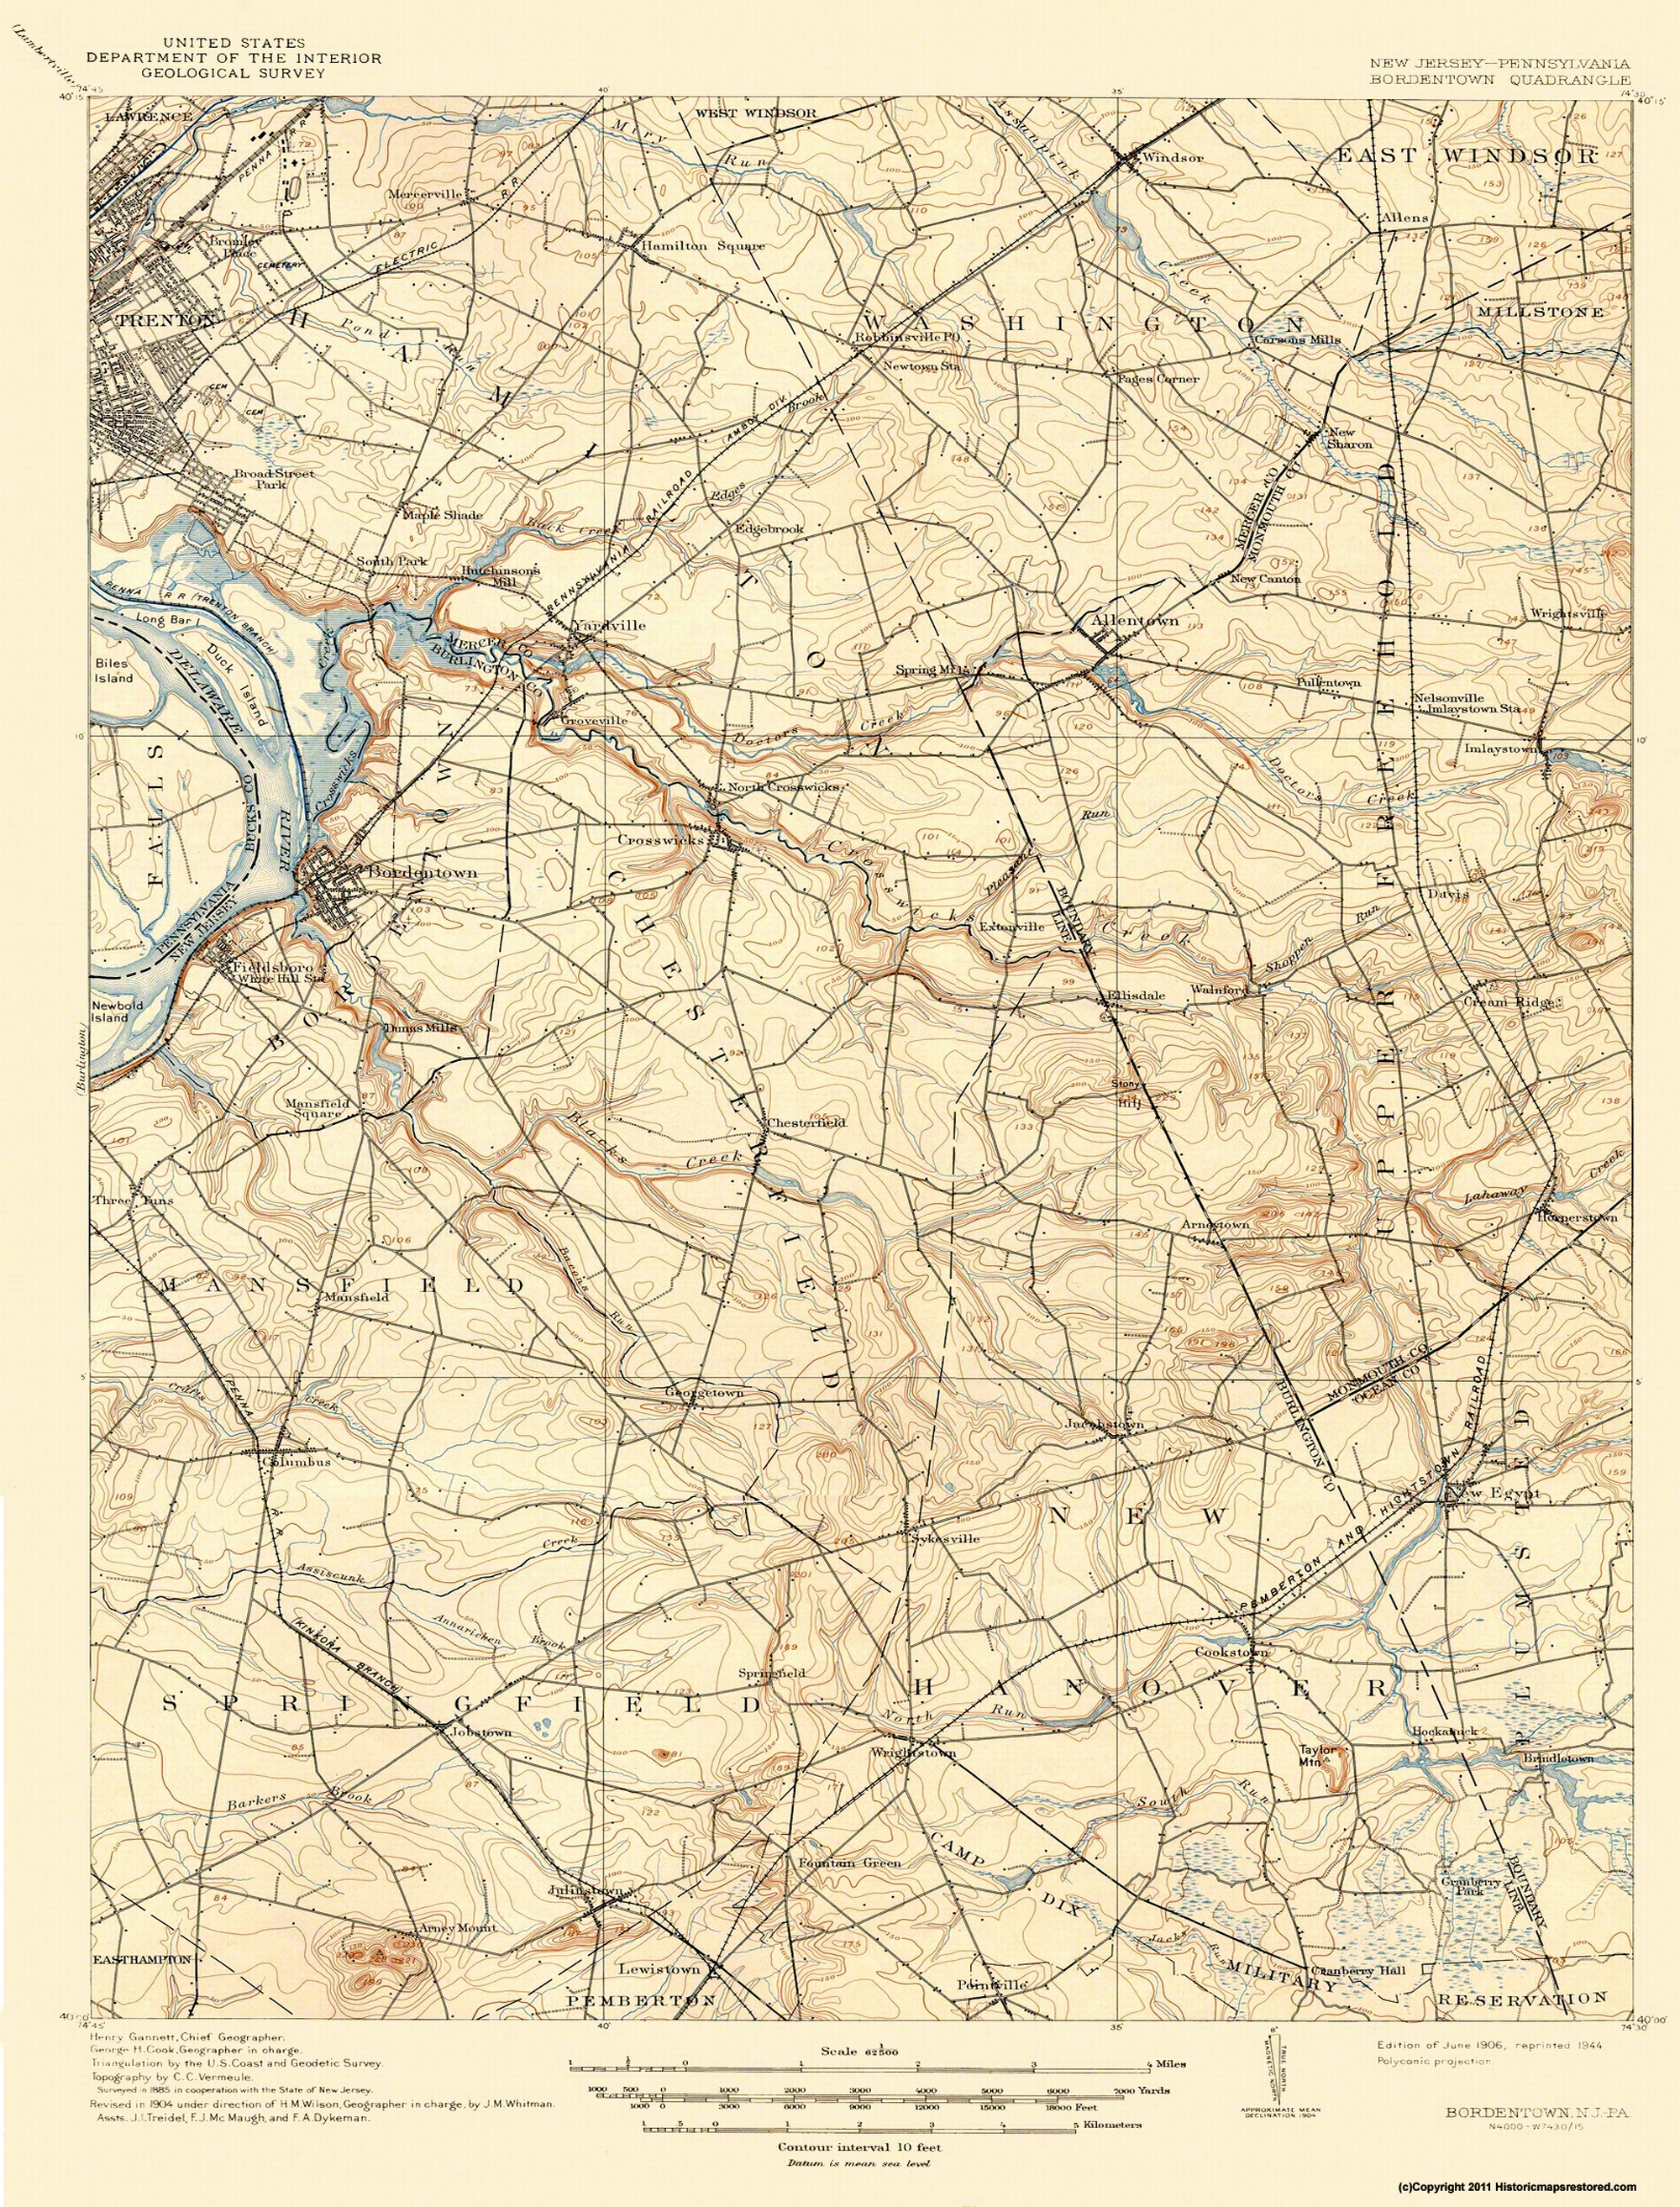 Topographical Map - Bordentown New Jersey, Pennsylvania Quad 1906 - on